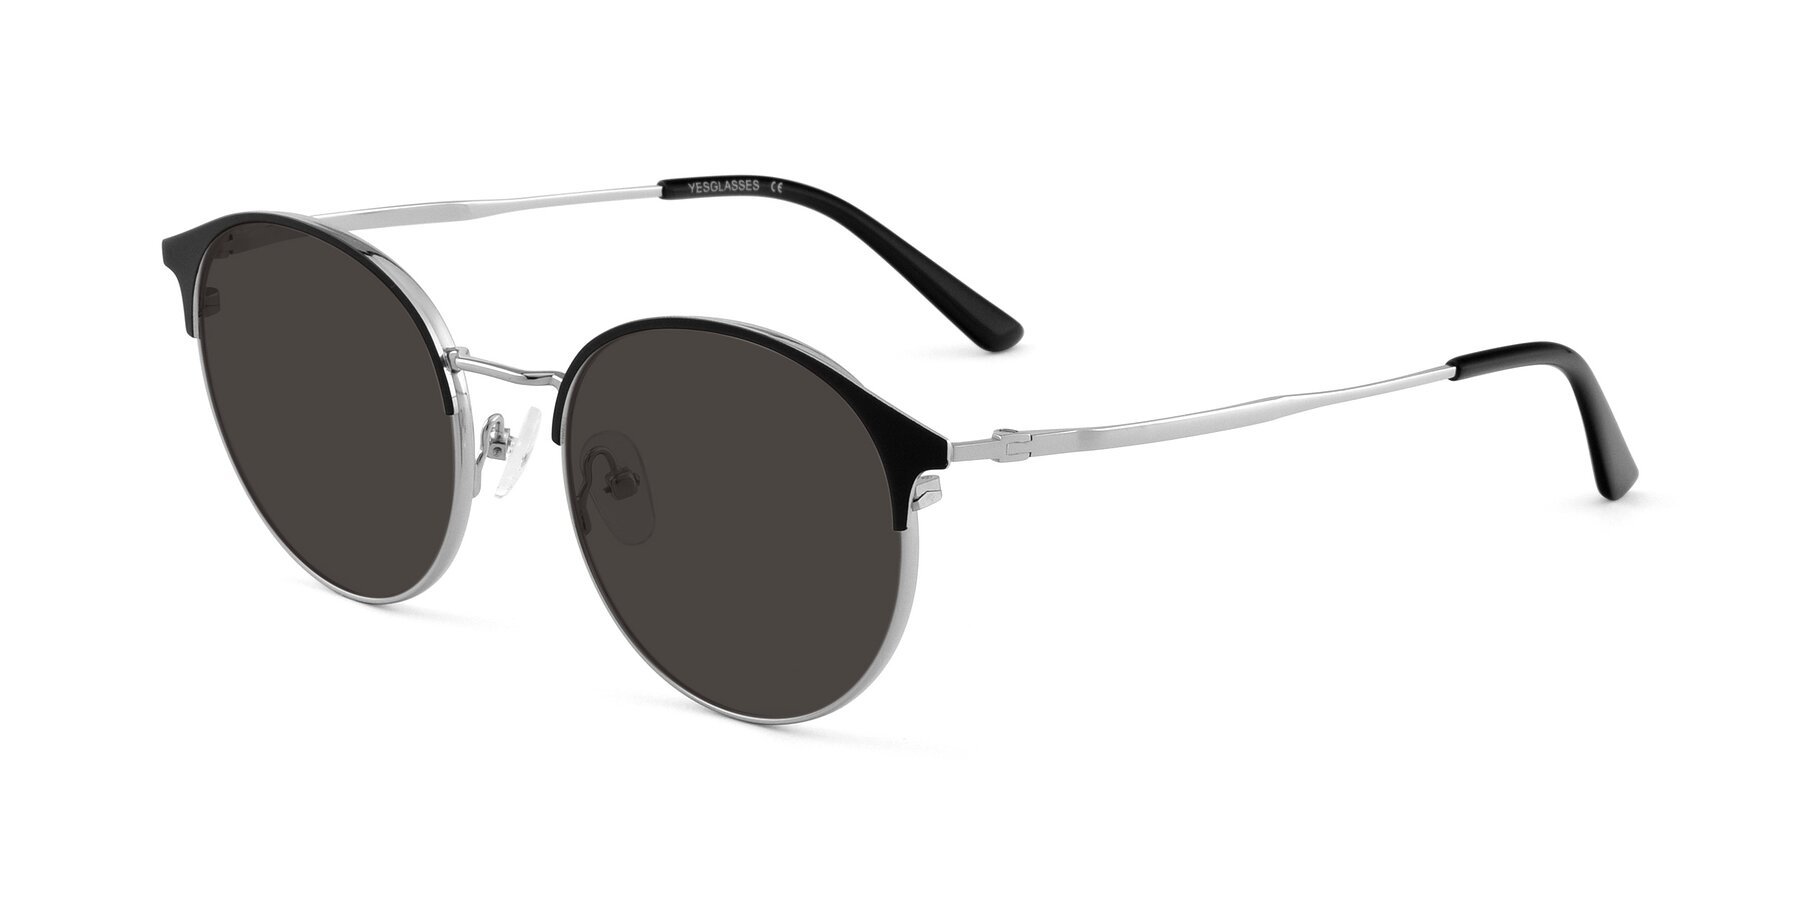 Angle of Berkley in Black-Silver with Gray Tinted Lenses